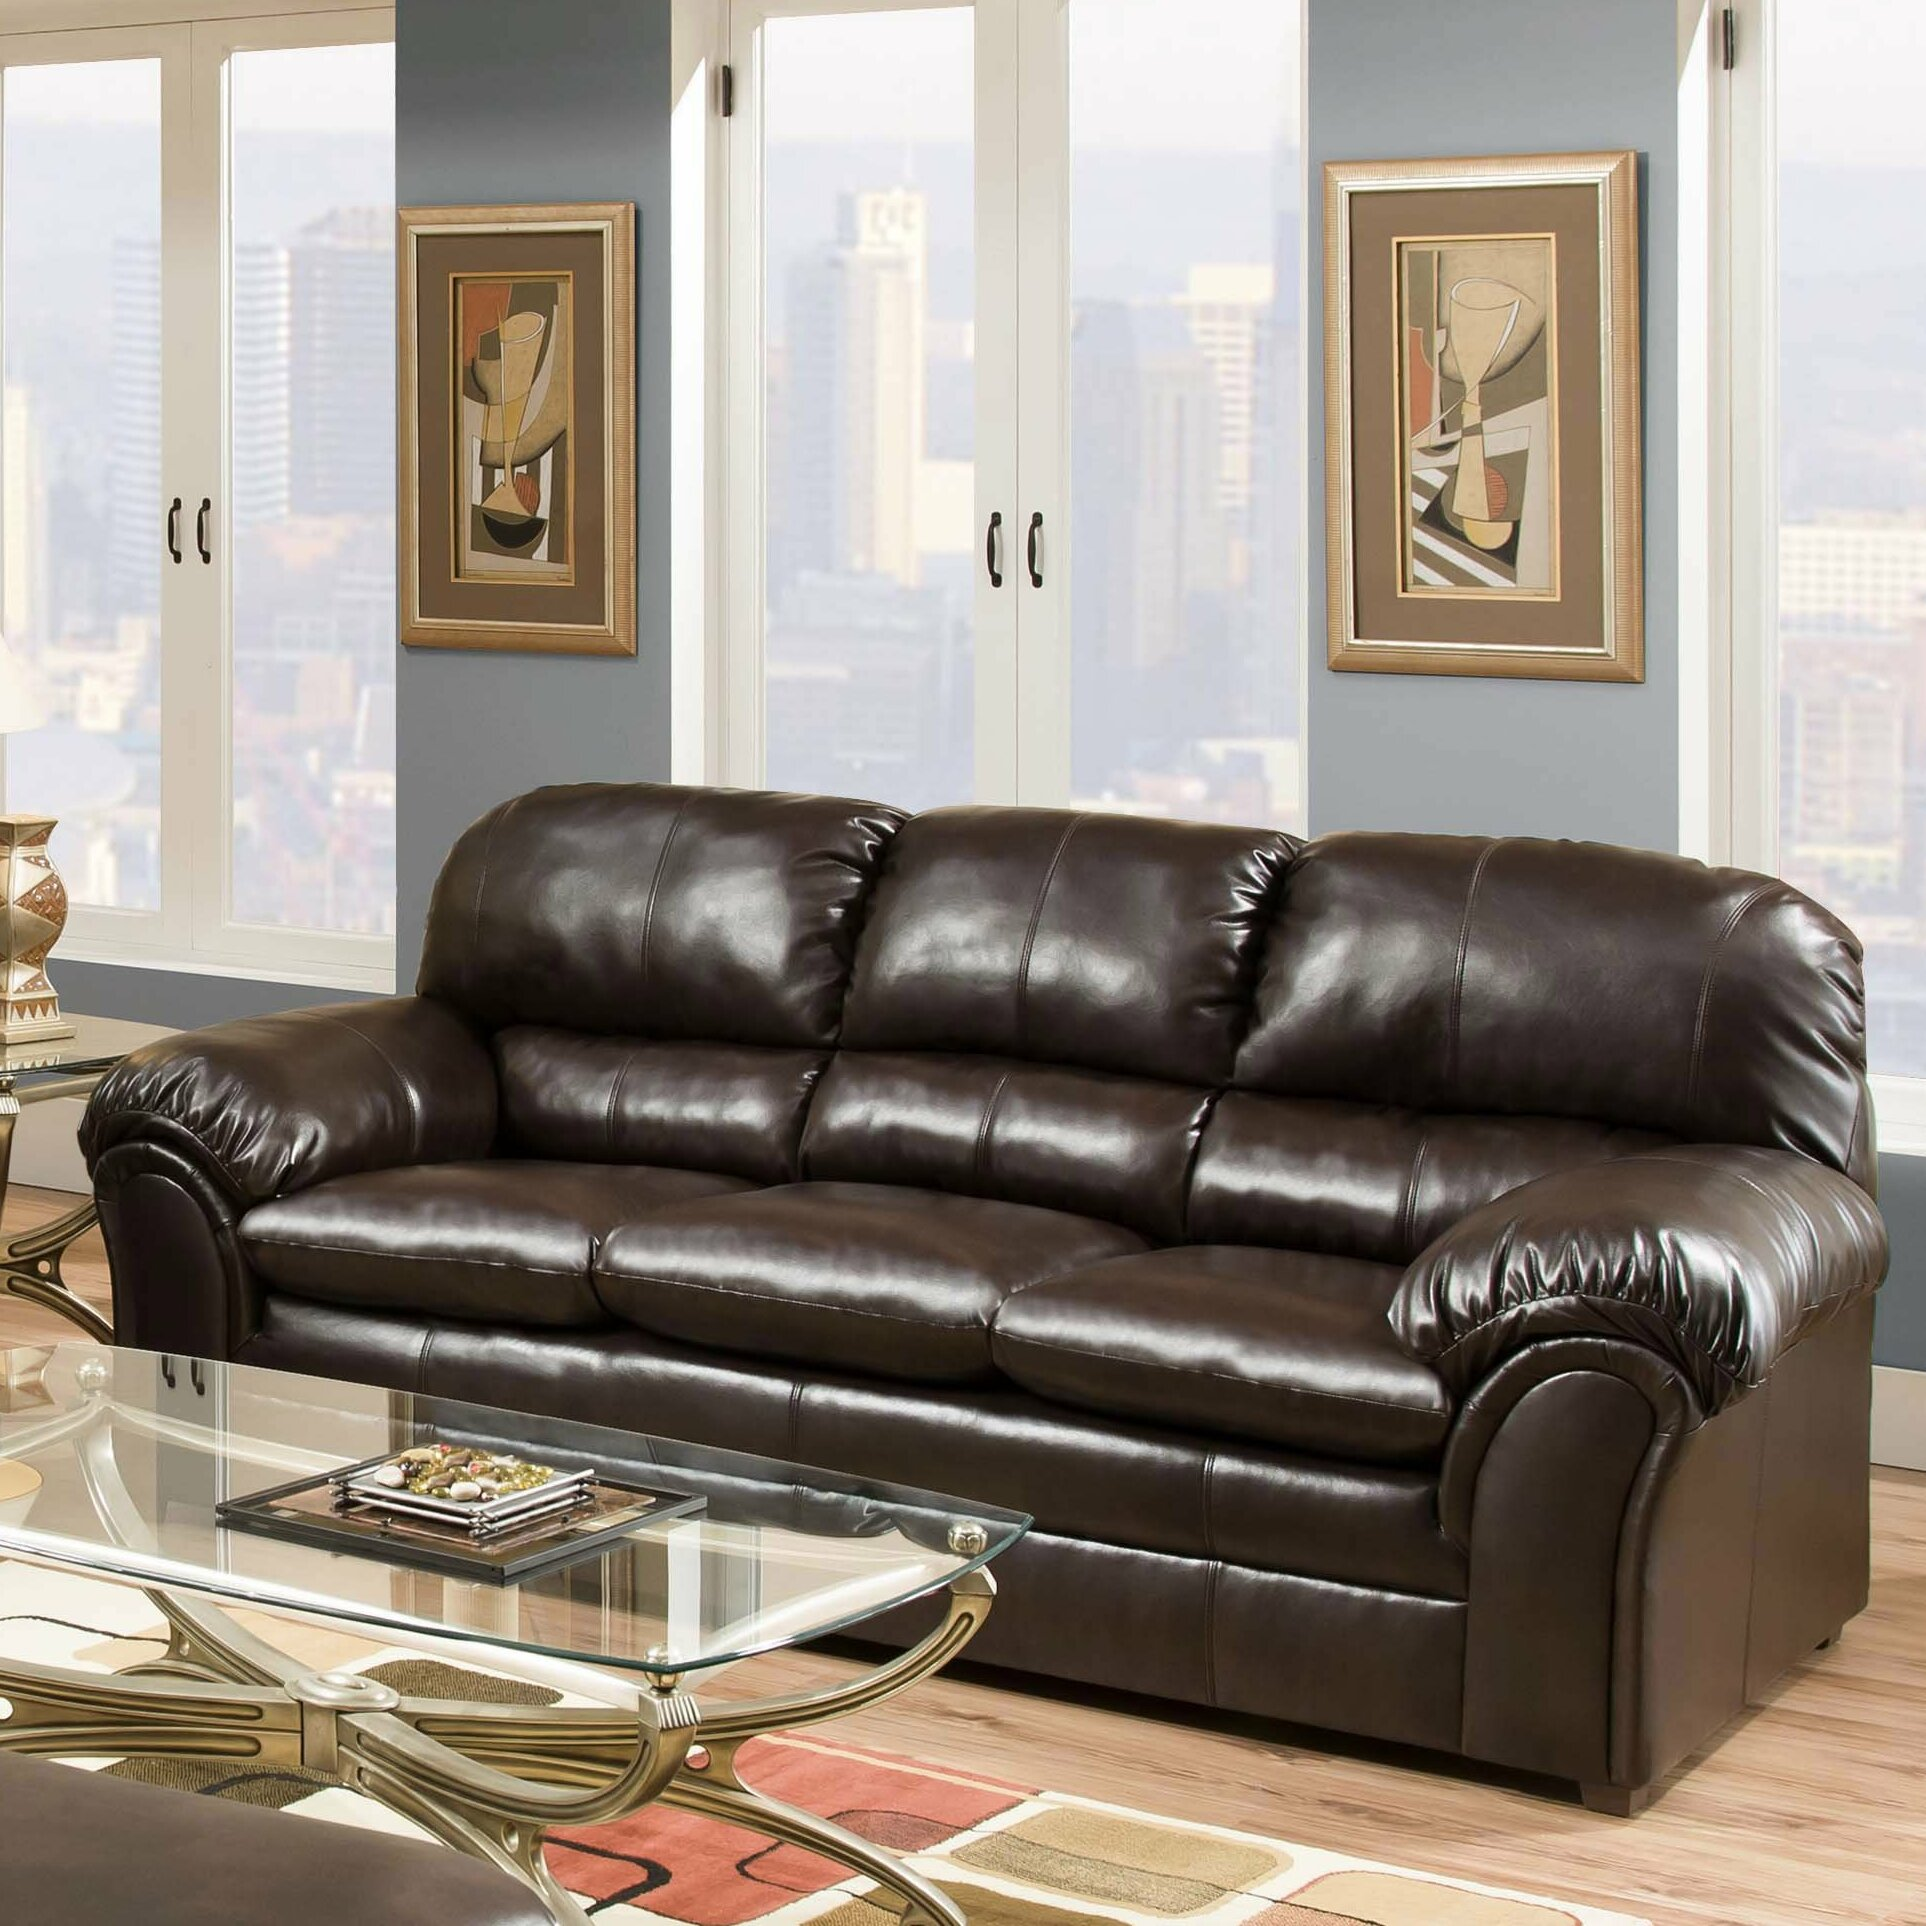 Living Room Furniture Leather And Upholstery